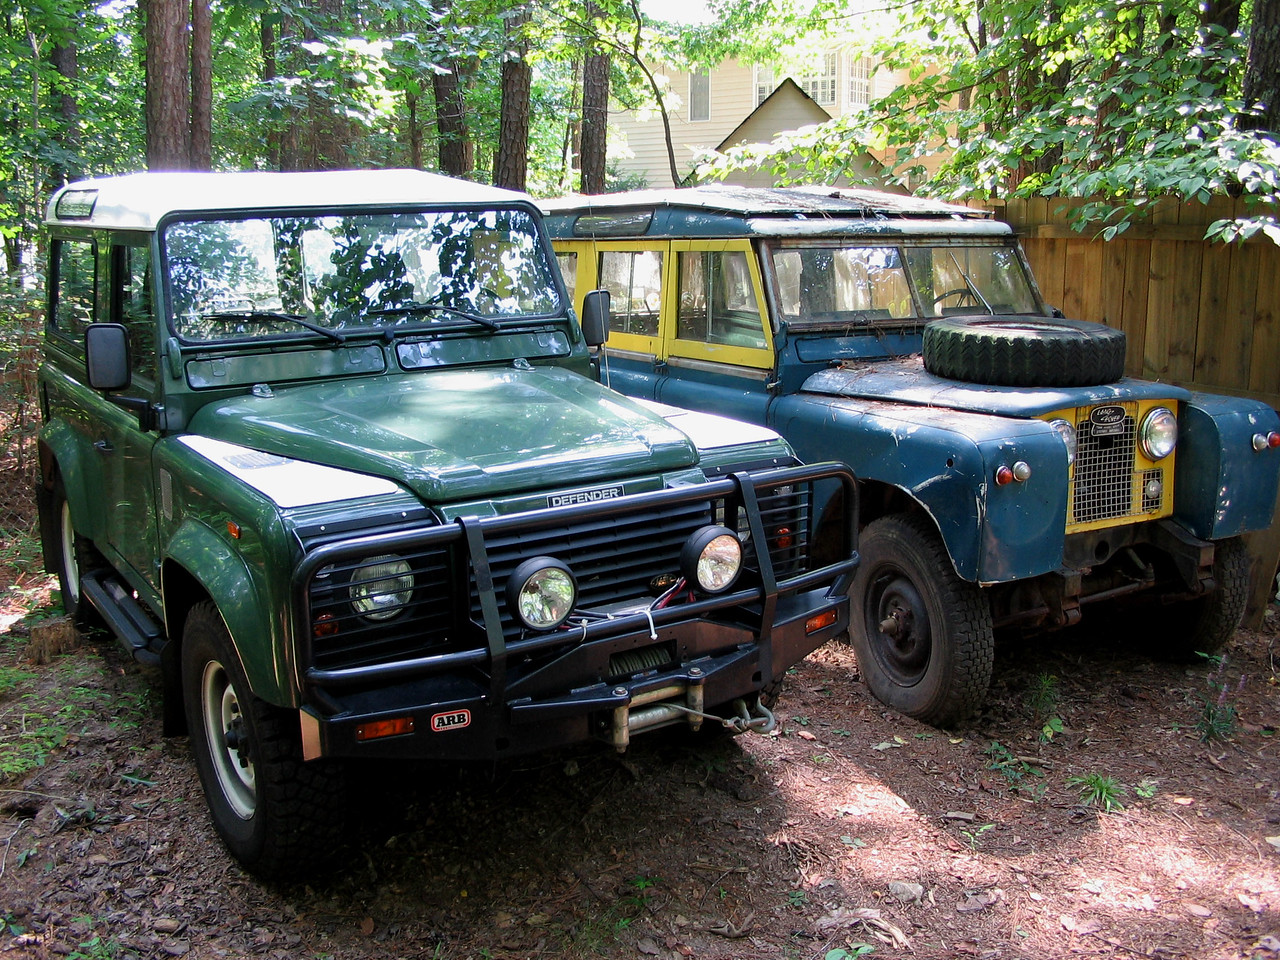 two diesels - D-90 with 300 Tdi and 109 with 2.25 diesel